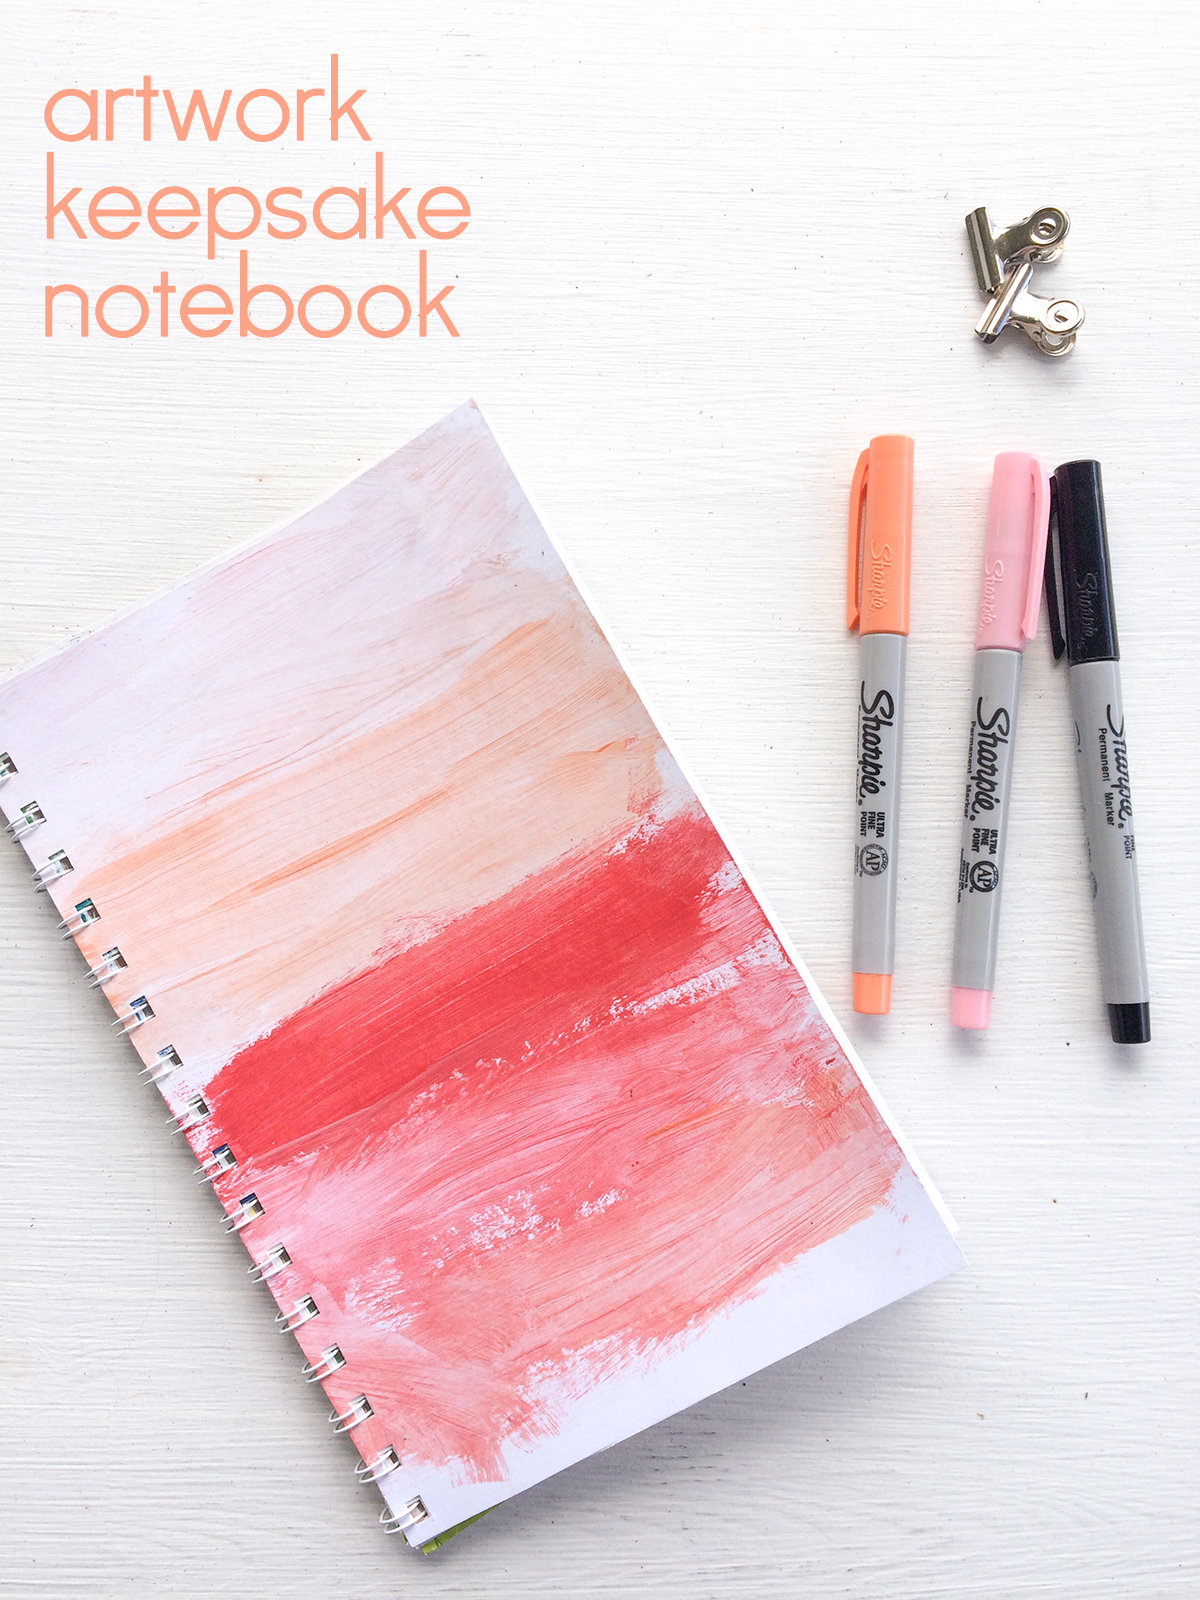 artworkkeepsakenotebook